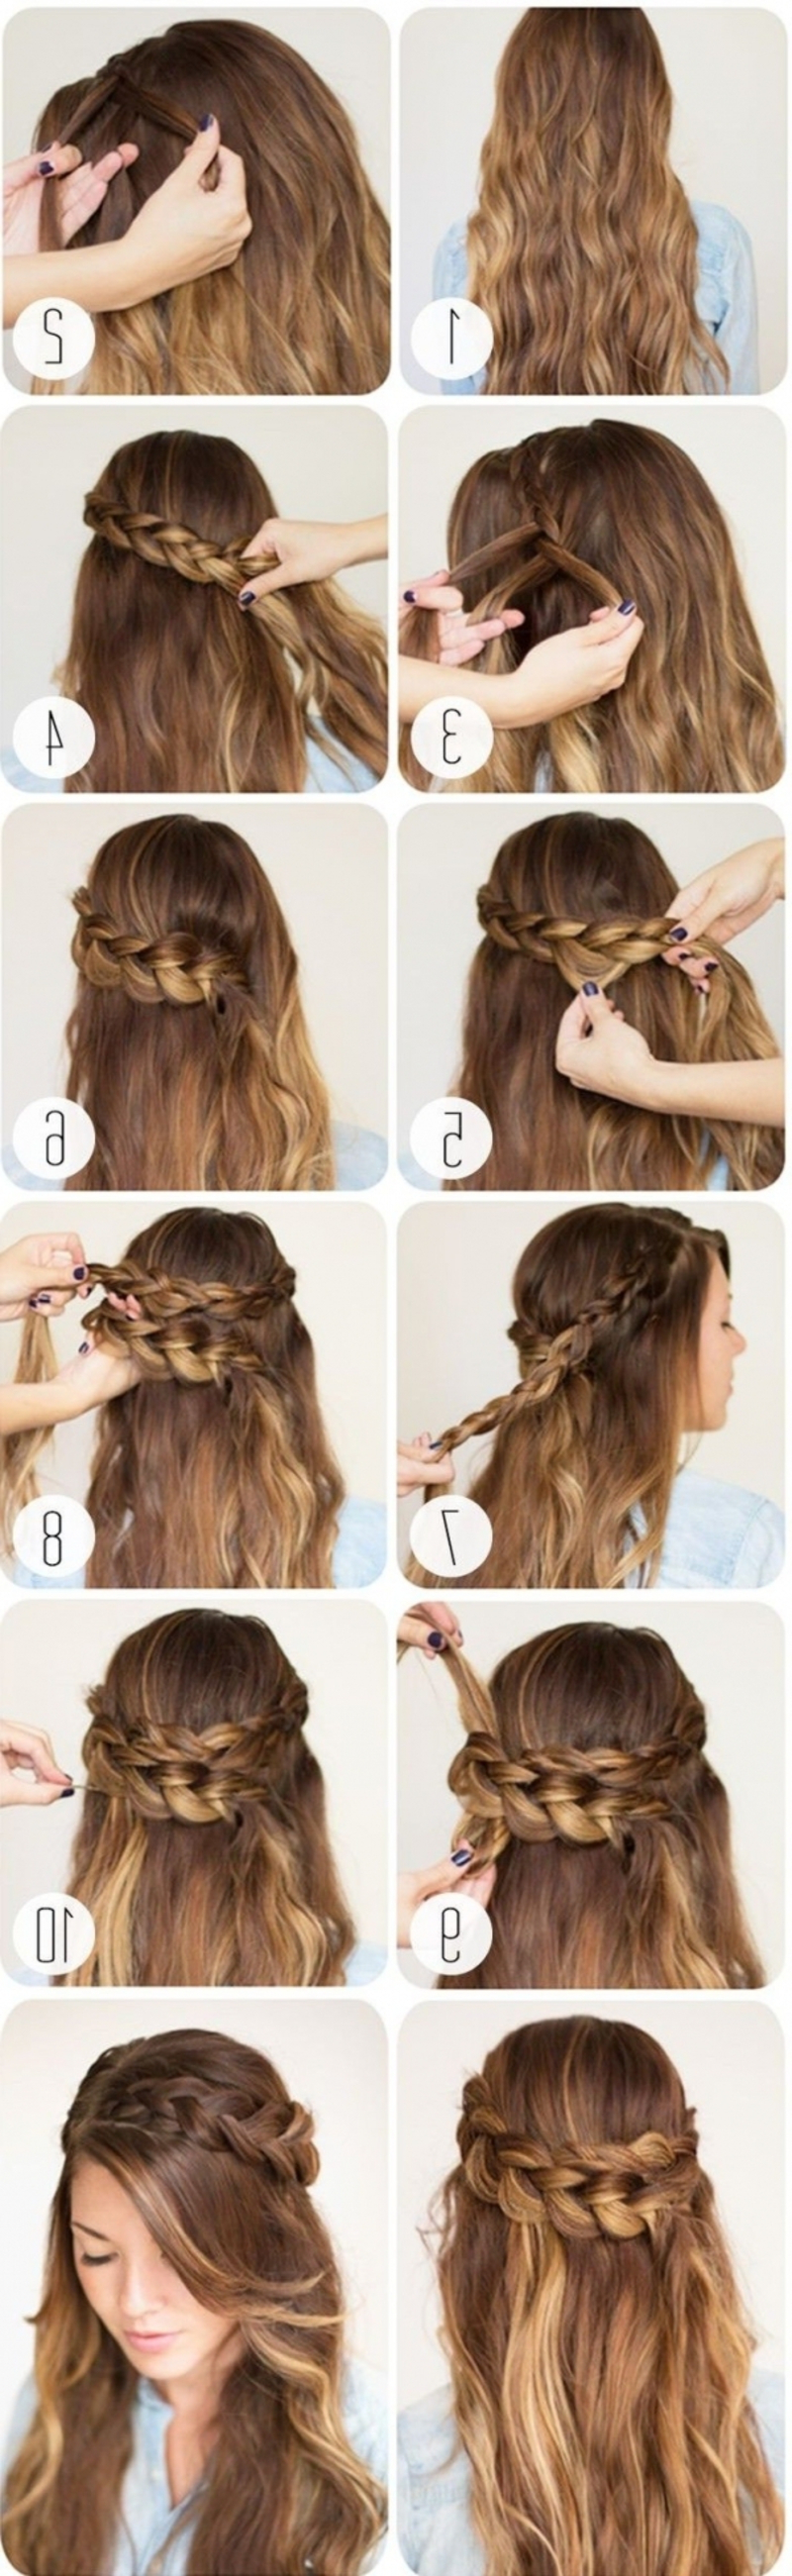 43 #fancy Braided #hairstyle Ideas From #pinterest Pertaining To Current Fancy Braided Hairstyles (View 5 of 20)